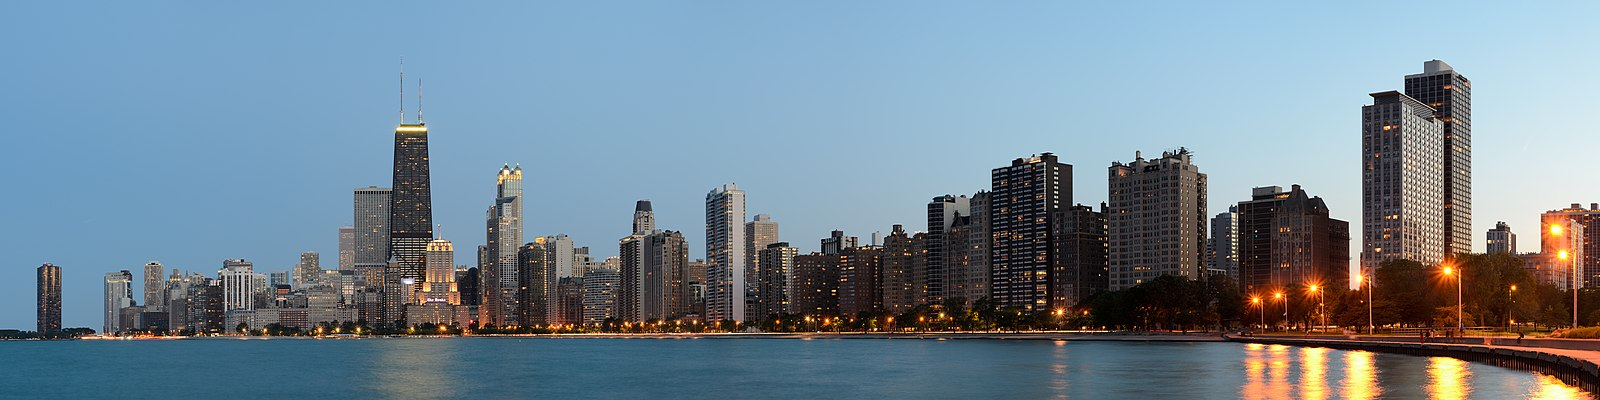 Chicago skyline at dusk from North Avenue